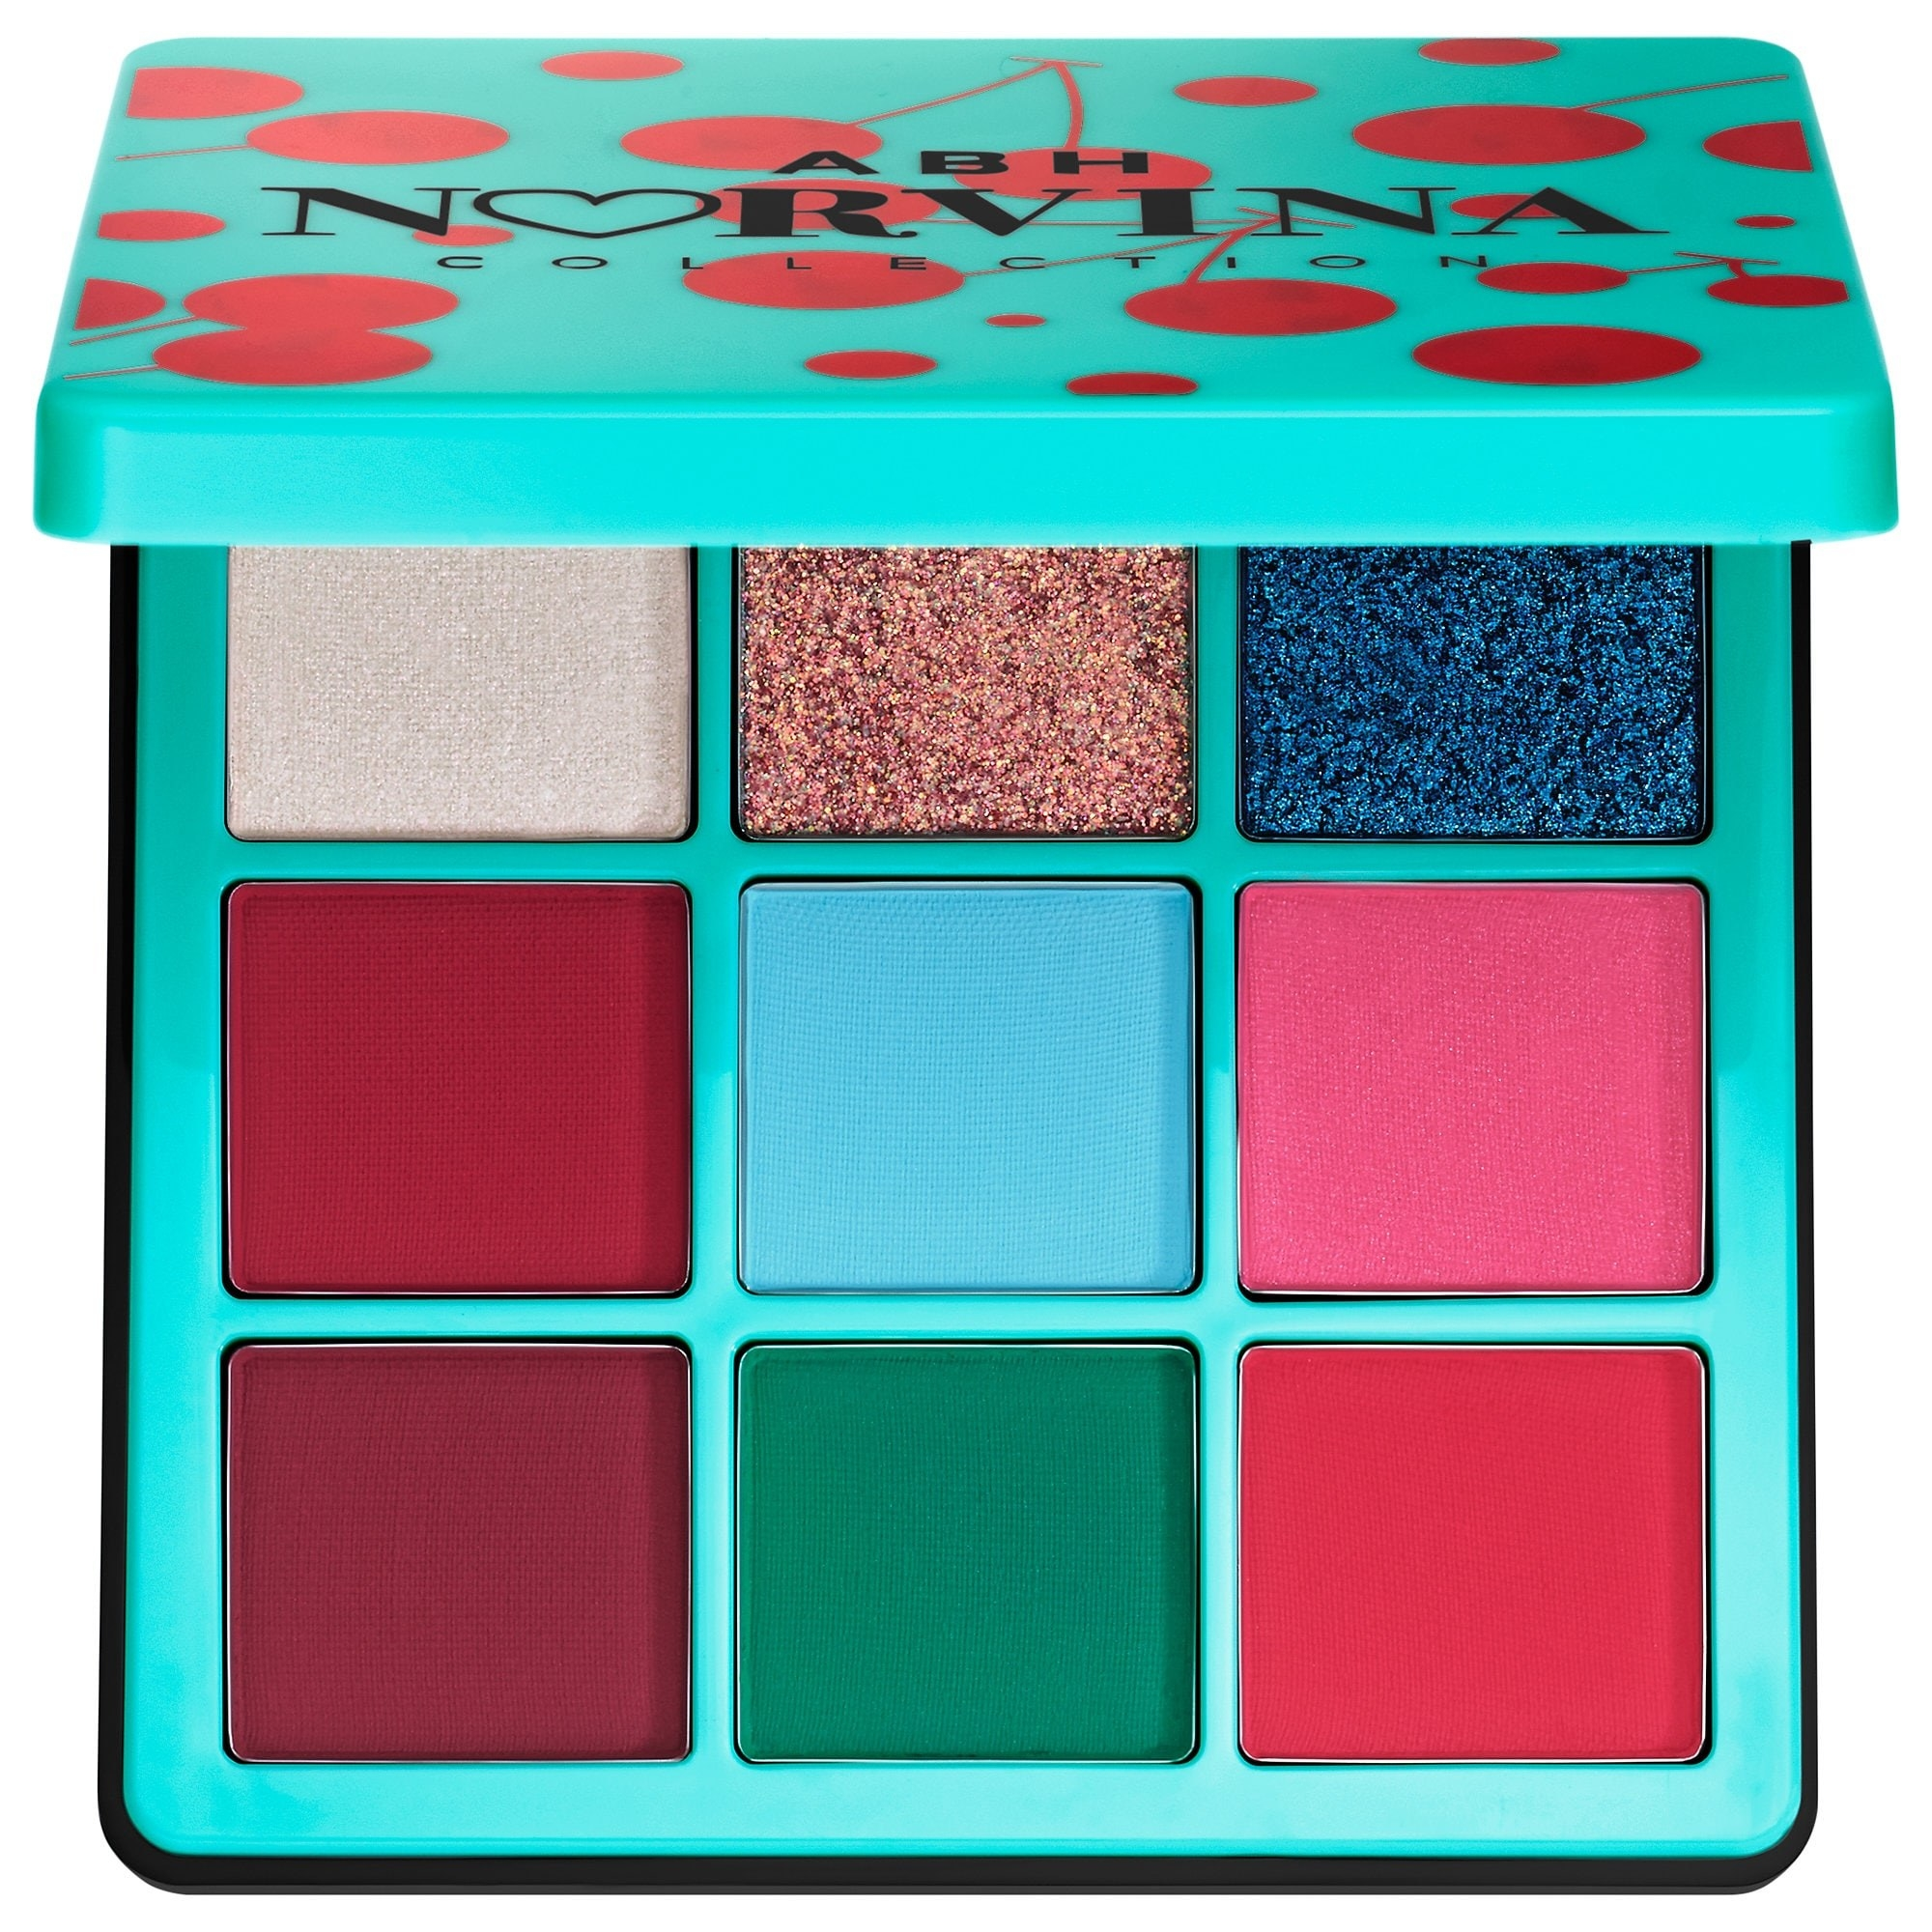 An opened teal square compact with nine color palettes